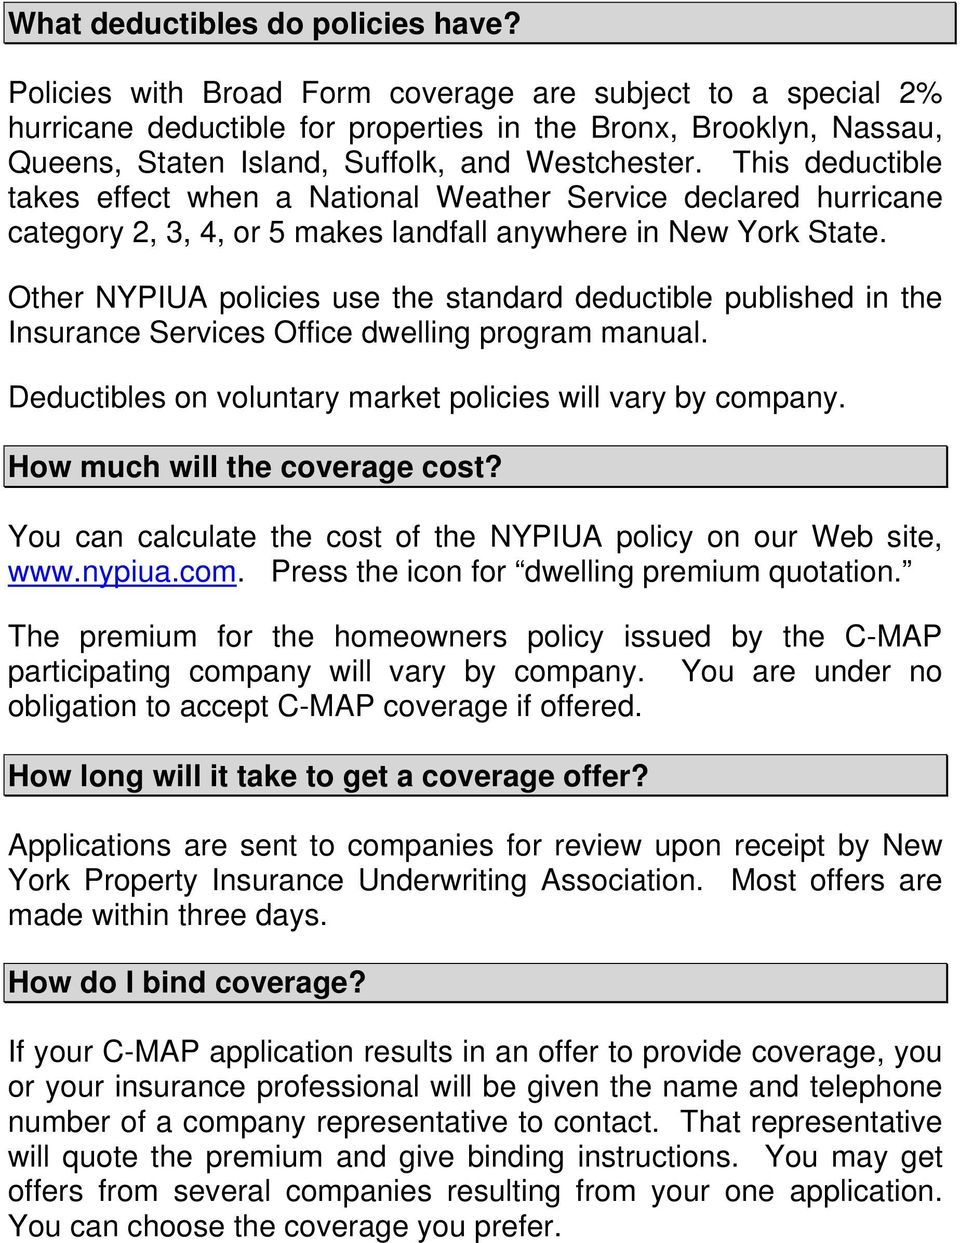 This deductible takes effect when a National Weather Service declared hurricane category 2, 3, 4, or 5 makes landfall anywhere in New York State.